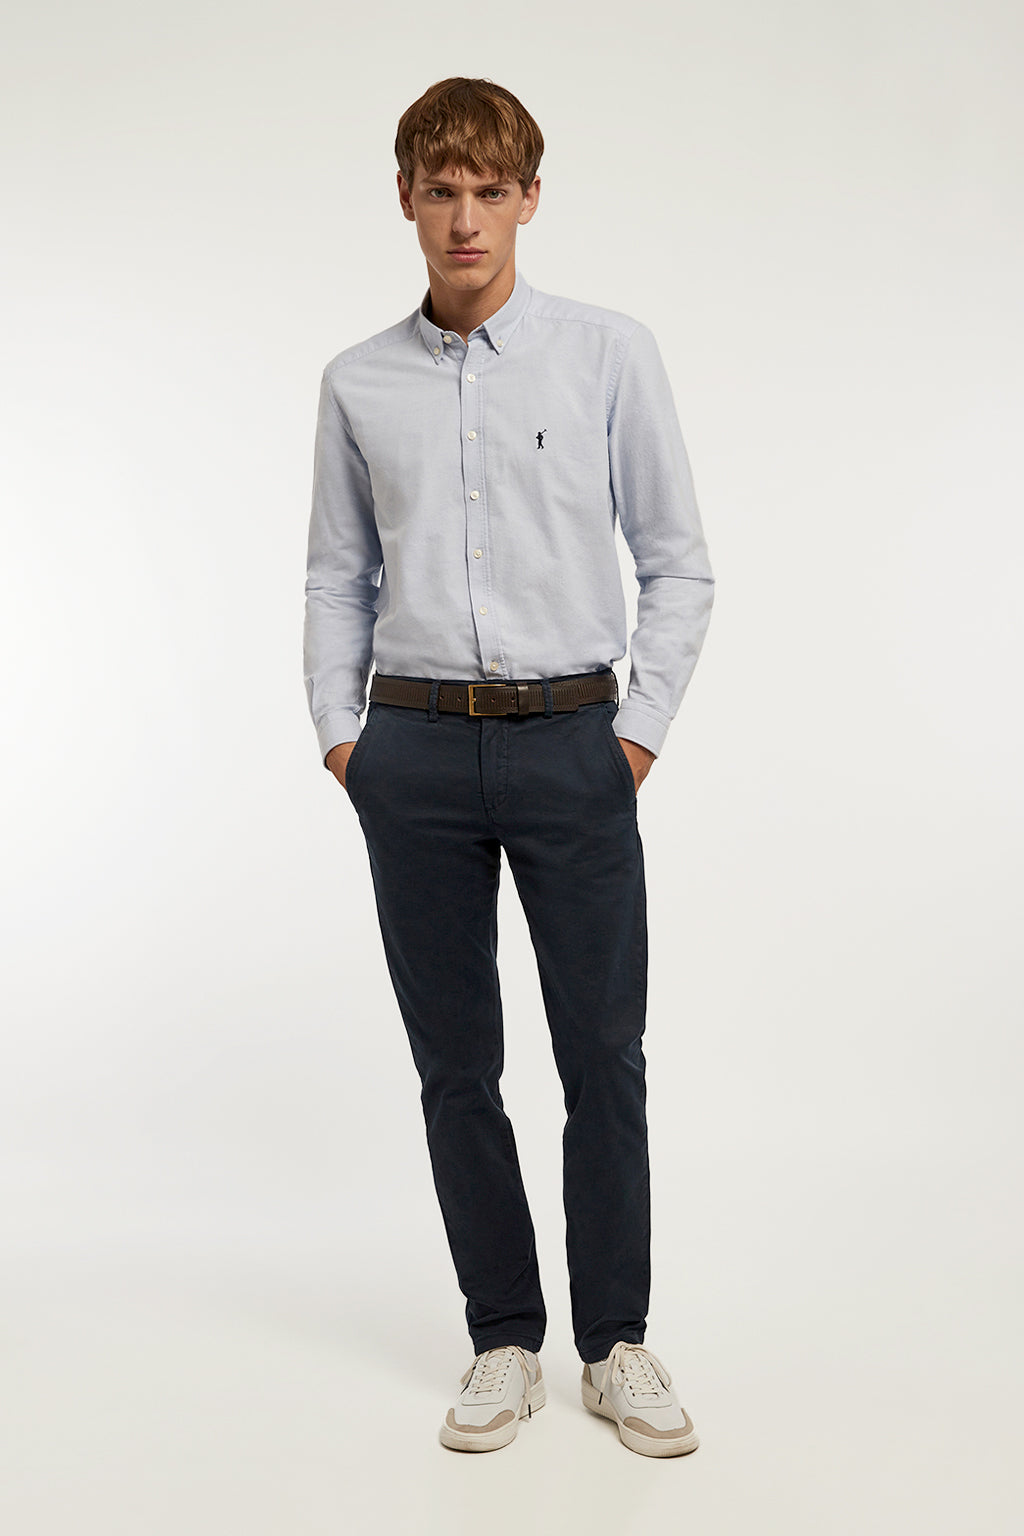 Navy blue custom fit chinos